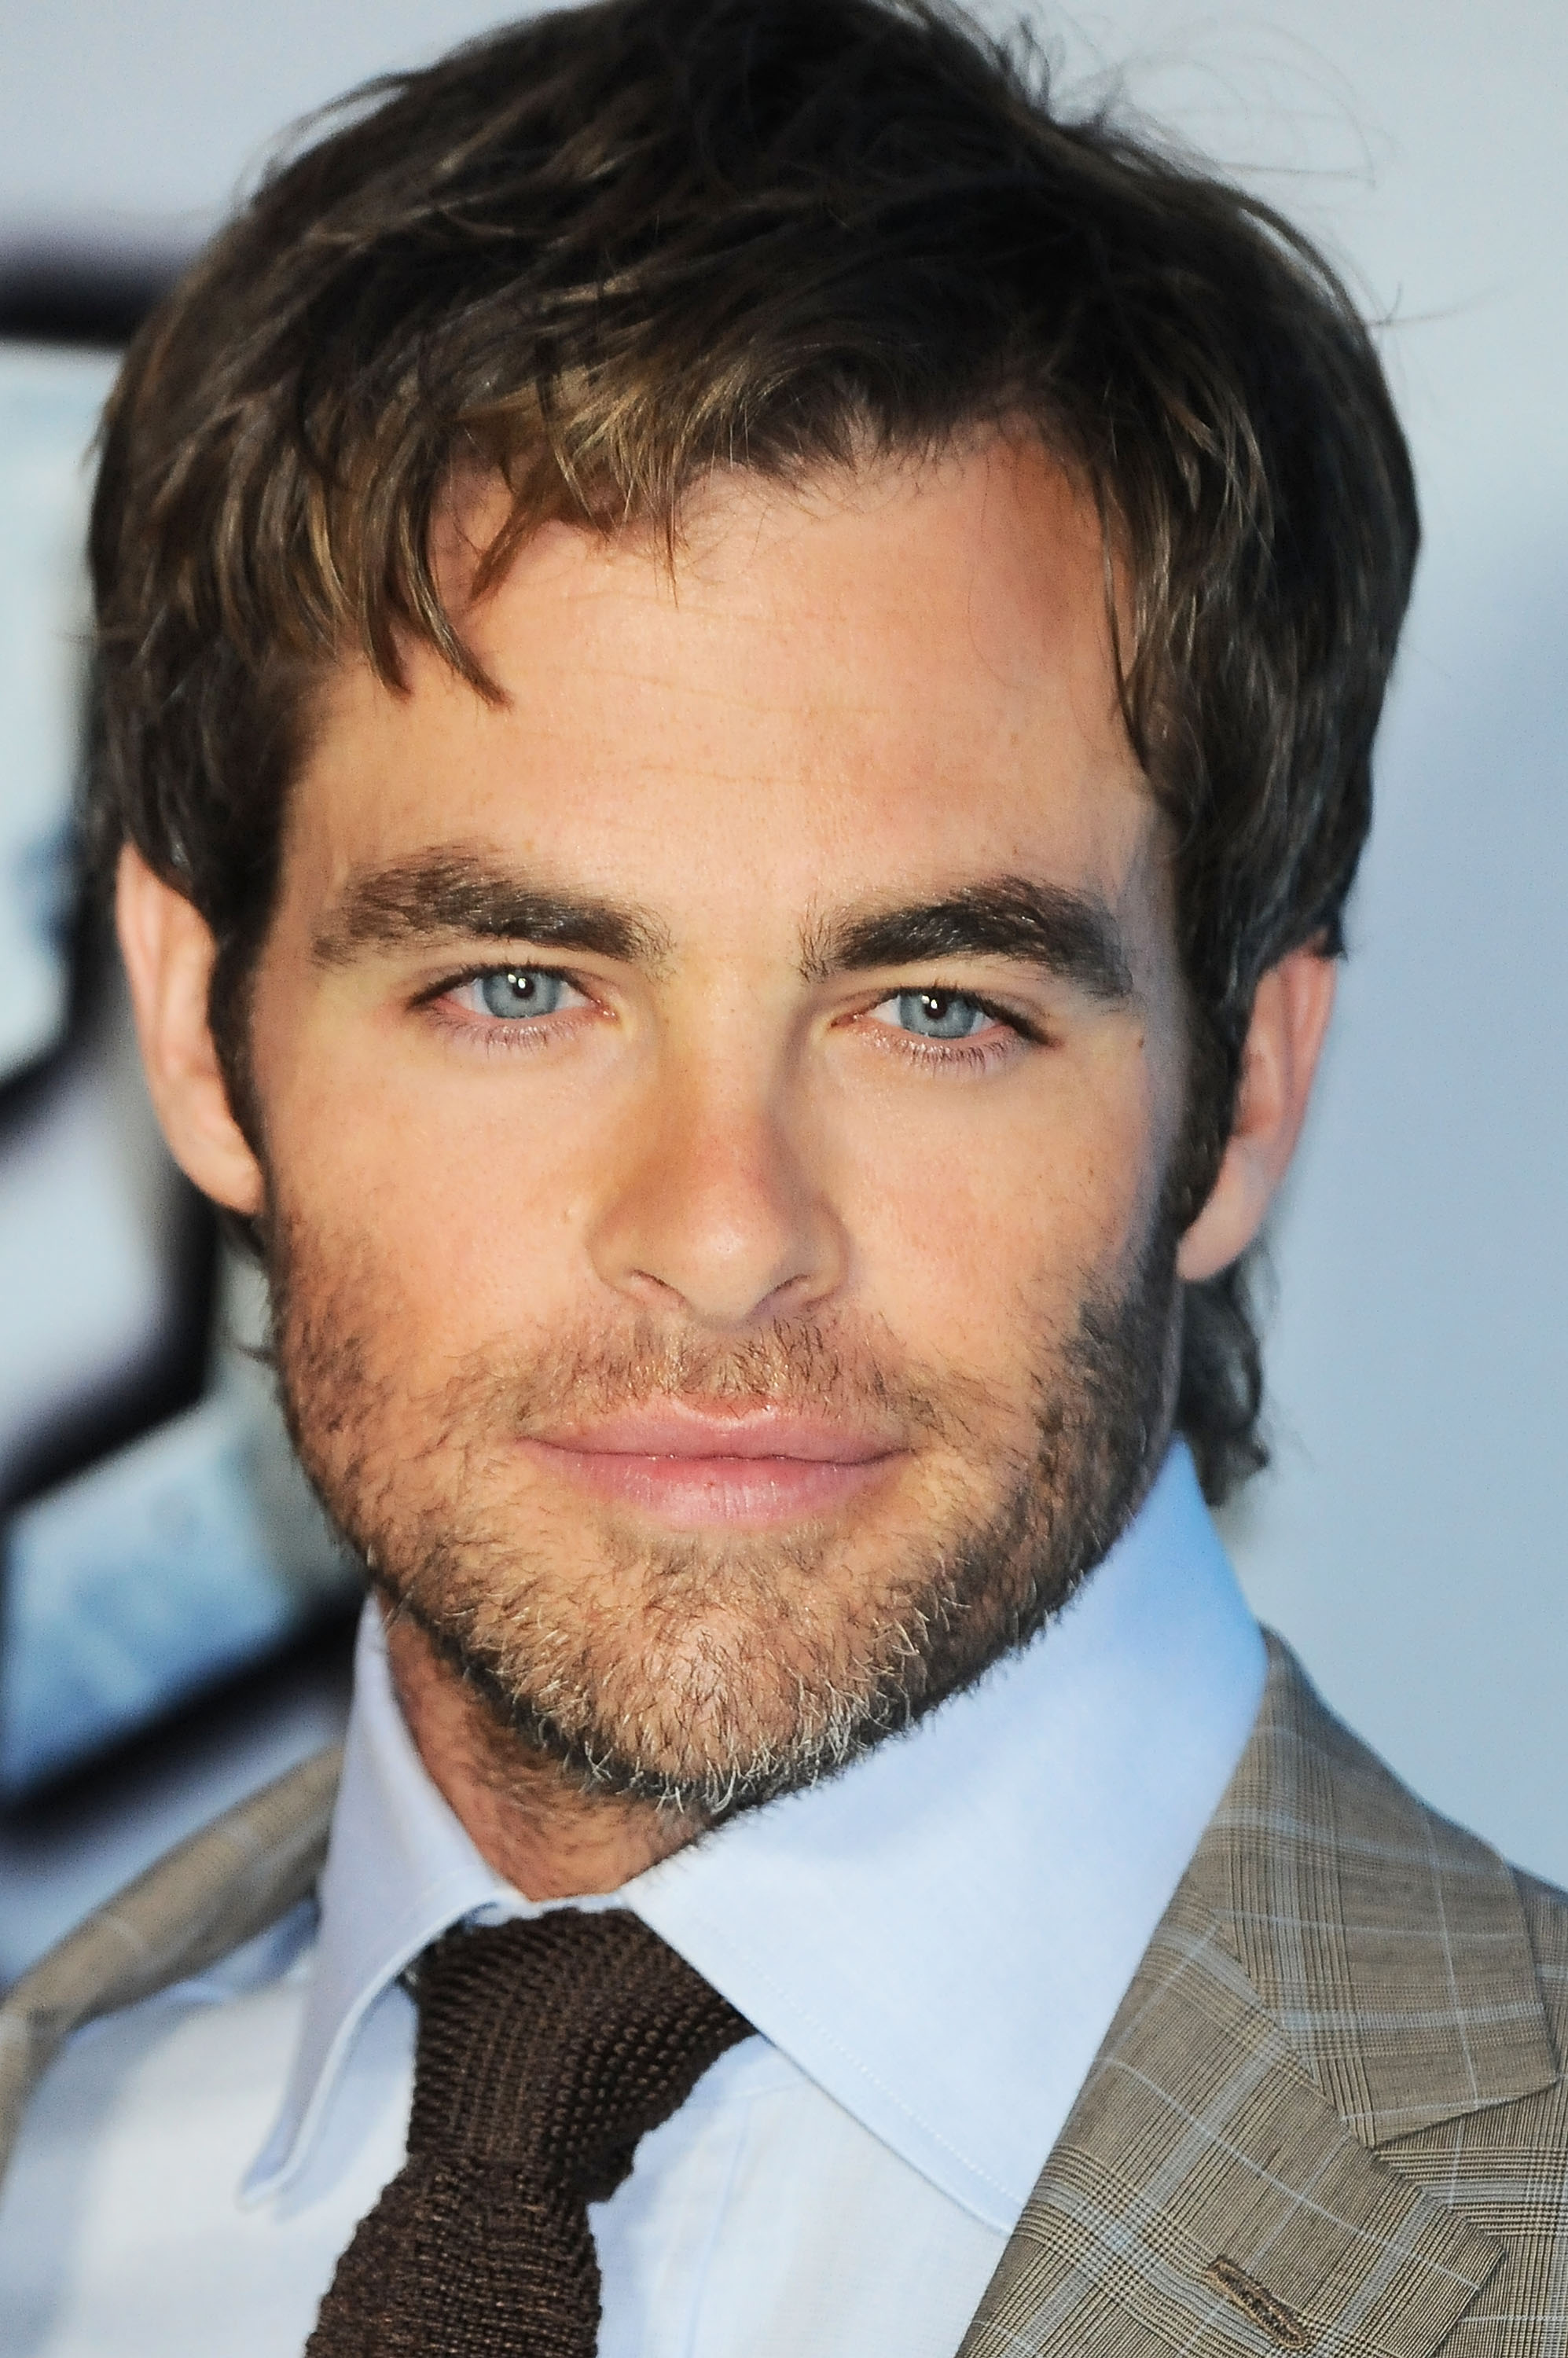 Chris Pine attends the  Star Trek Into Darkness  stage greeting at Toho Cinemas Roppongi on August 13, 2013 in Tokyo, Japan.